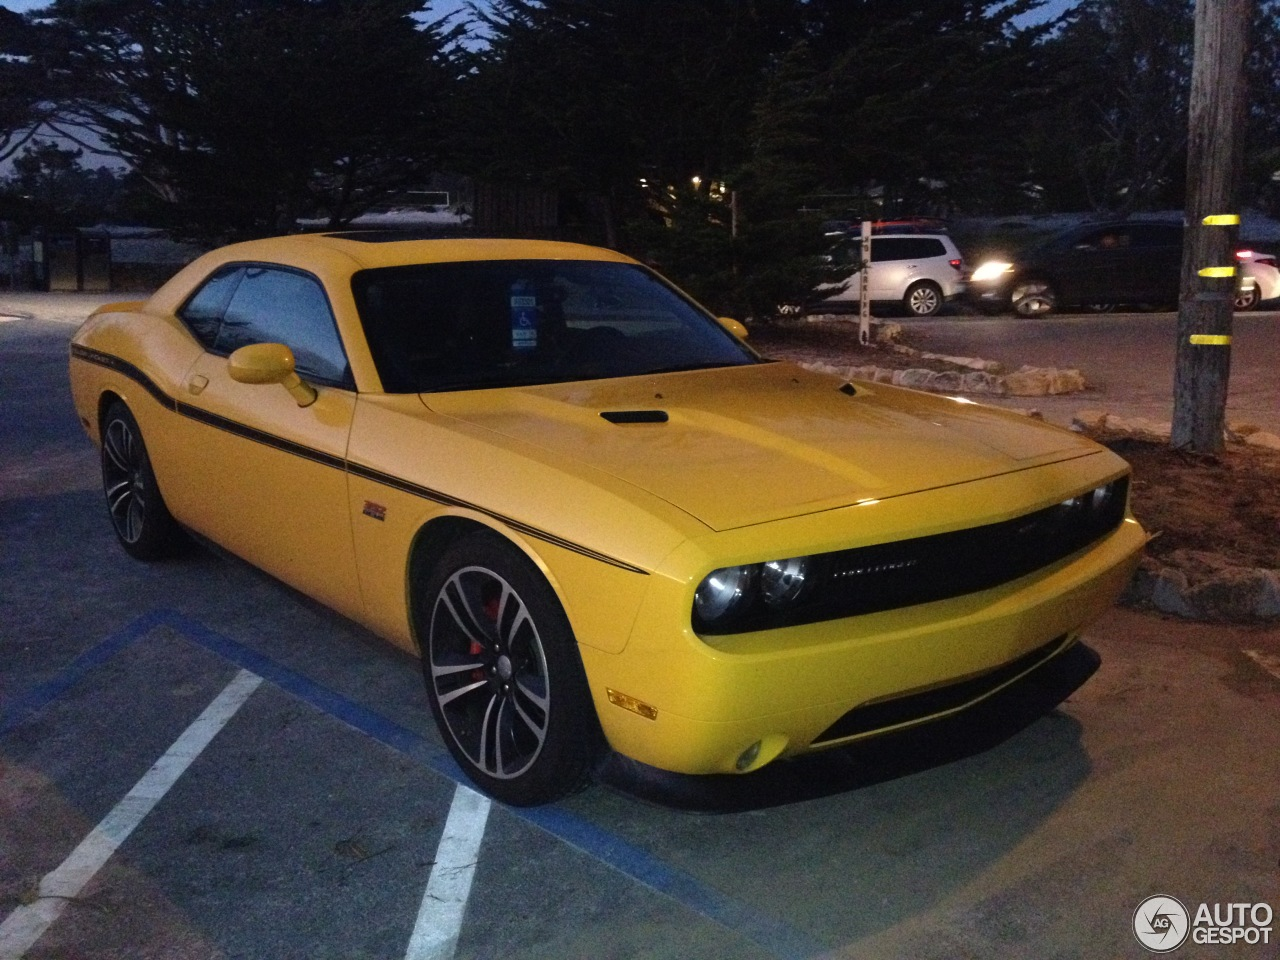 dodge challenger srt8 392 yellow jacket 31 may 2015 autogespot. Black Bedroom Furniture Sets. Home Design Ideas